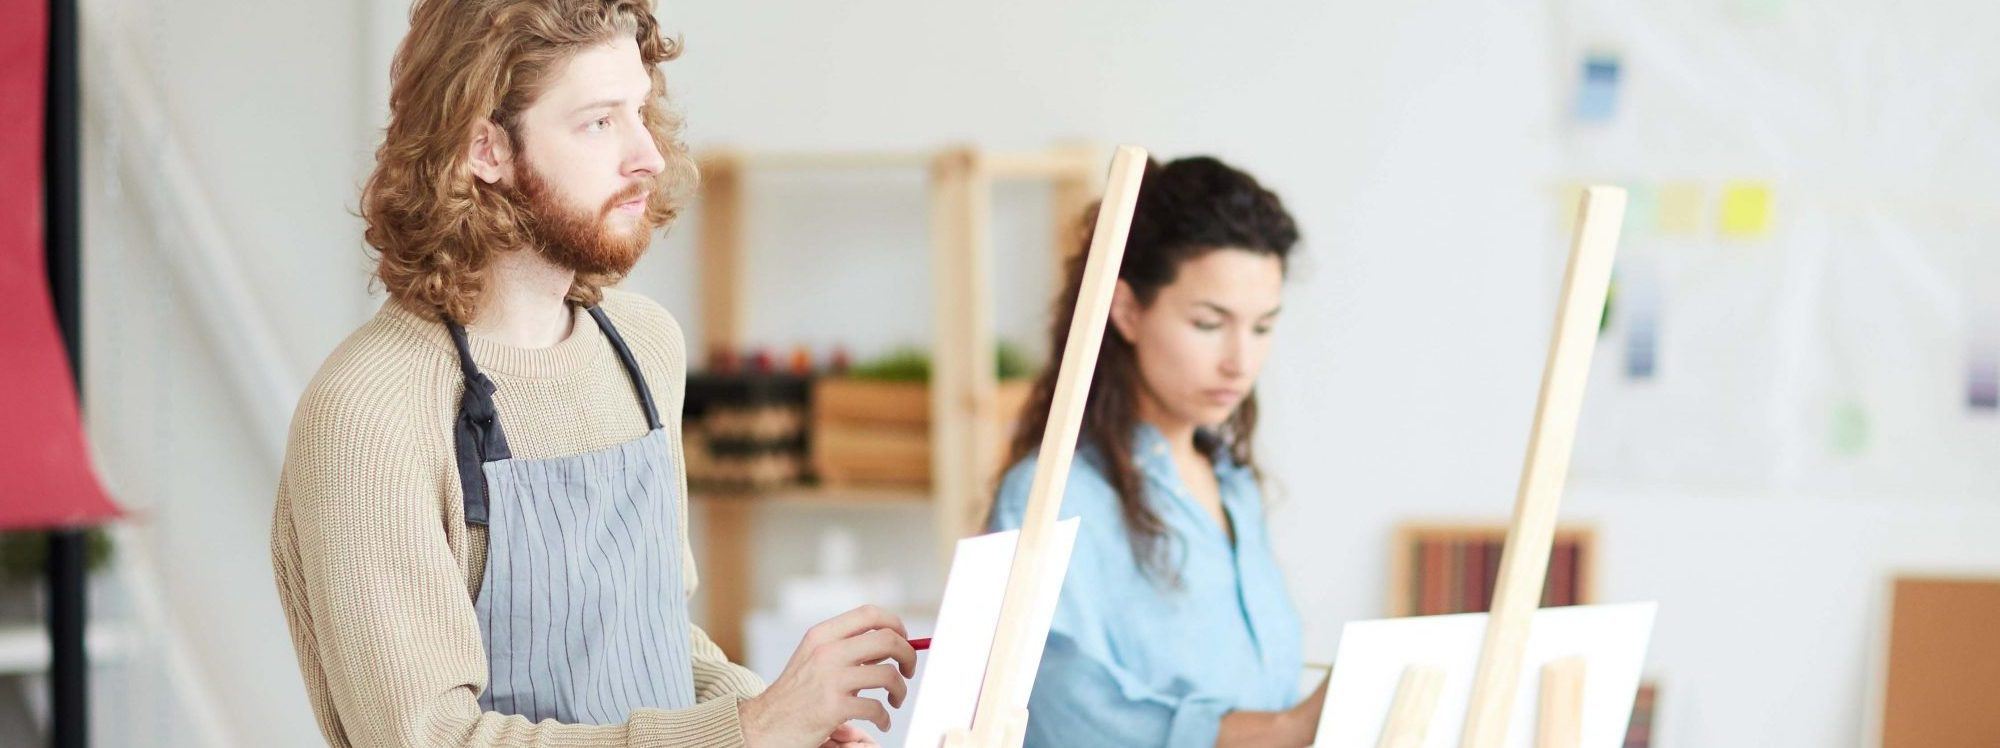 Young pensive artist getting inspired while standing in front of easel and painting in studio